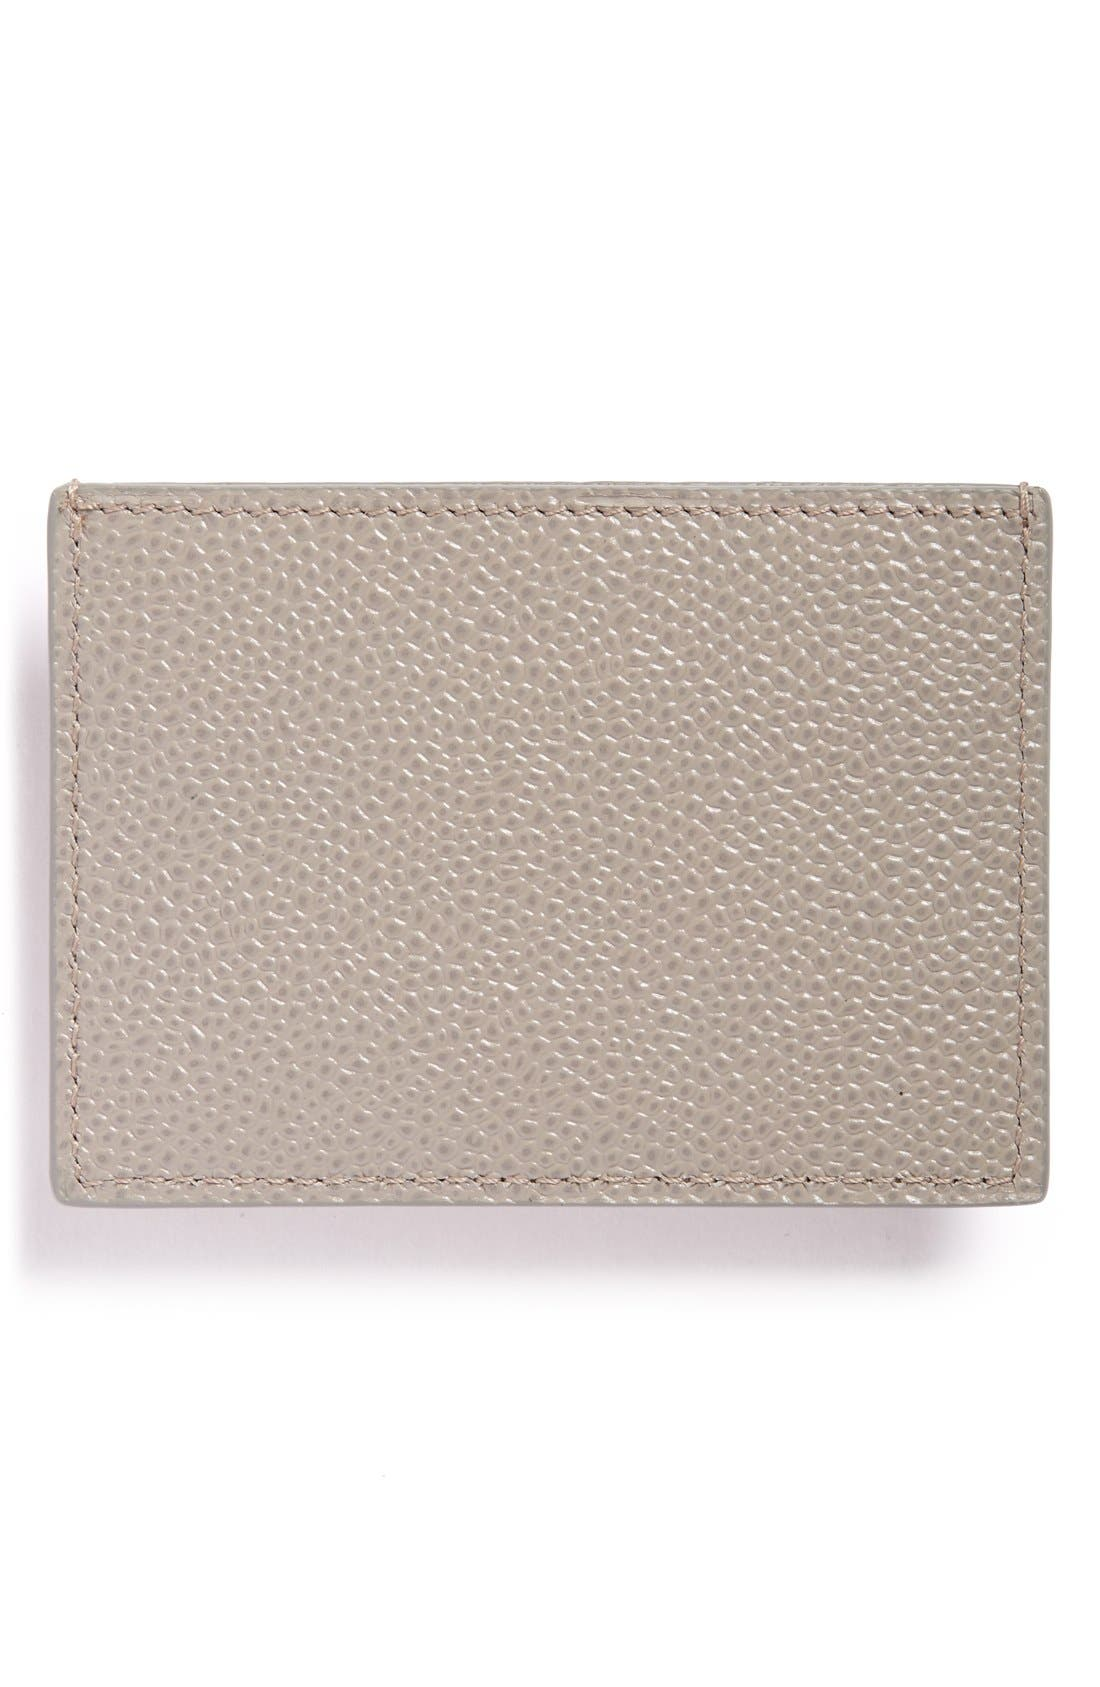 Pebbled Leather Card Case,                         Main,                         color, 035